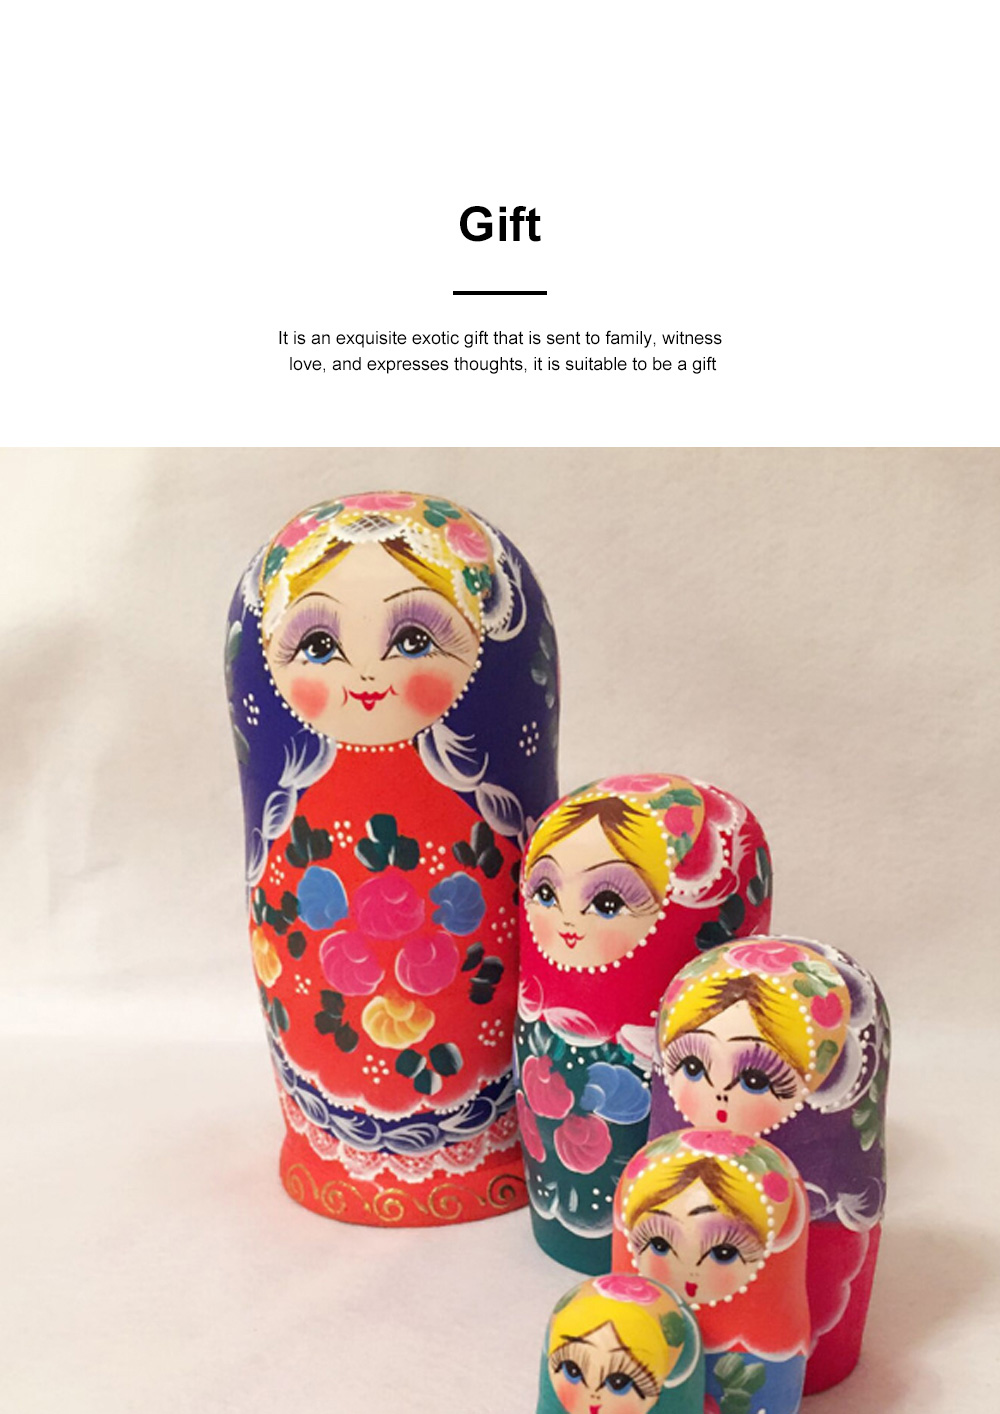 Matryoshka Dolls Nesting Stacking Wooden Russian Toys with Flower Ornament Hand Painted Wood Souvenir Folk Art Crafts 1